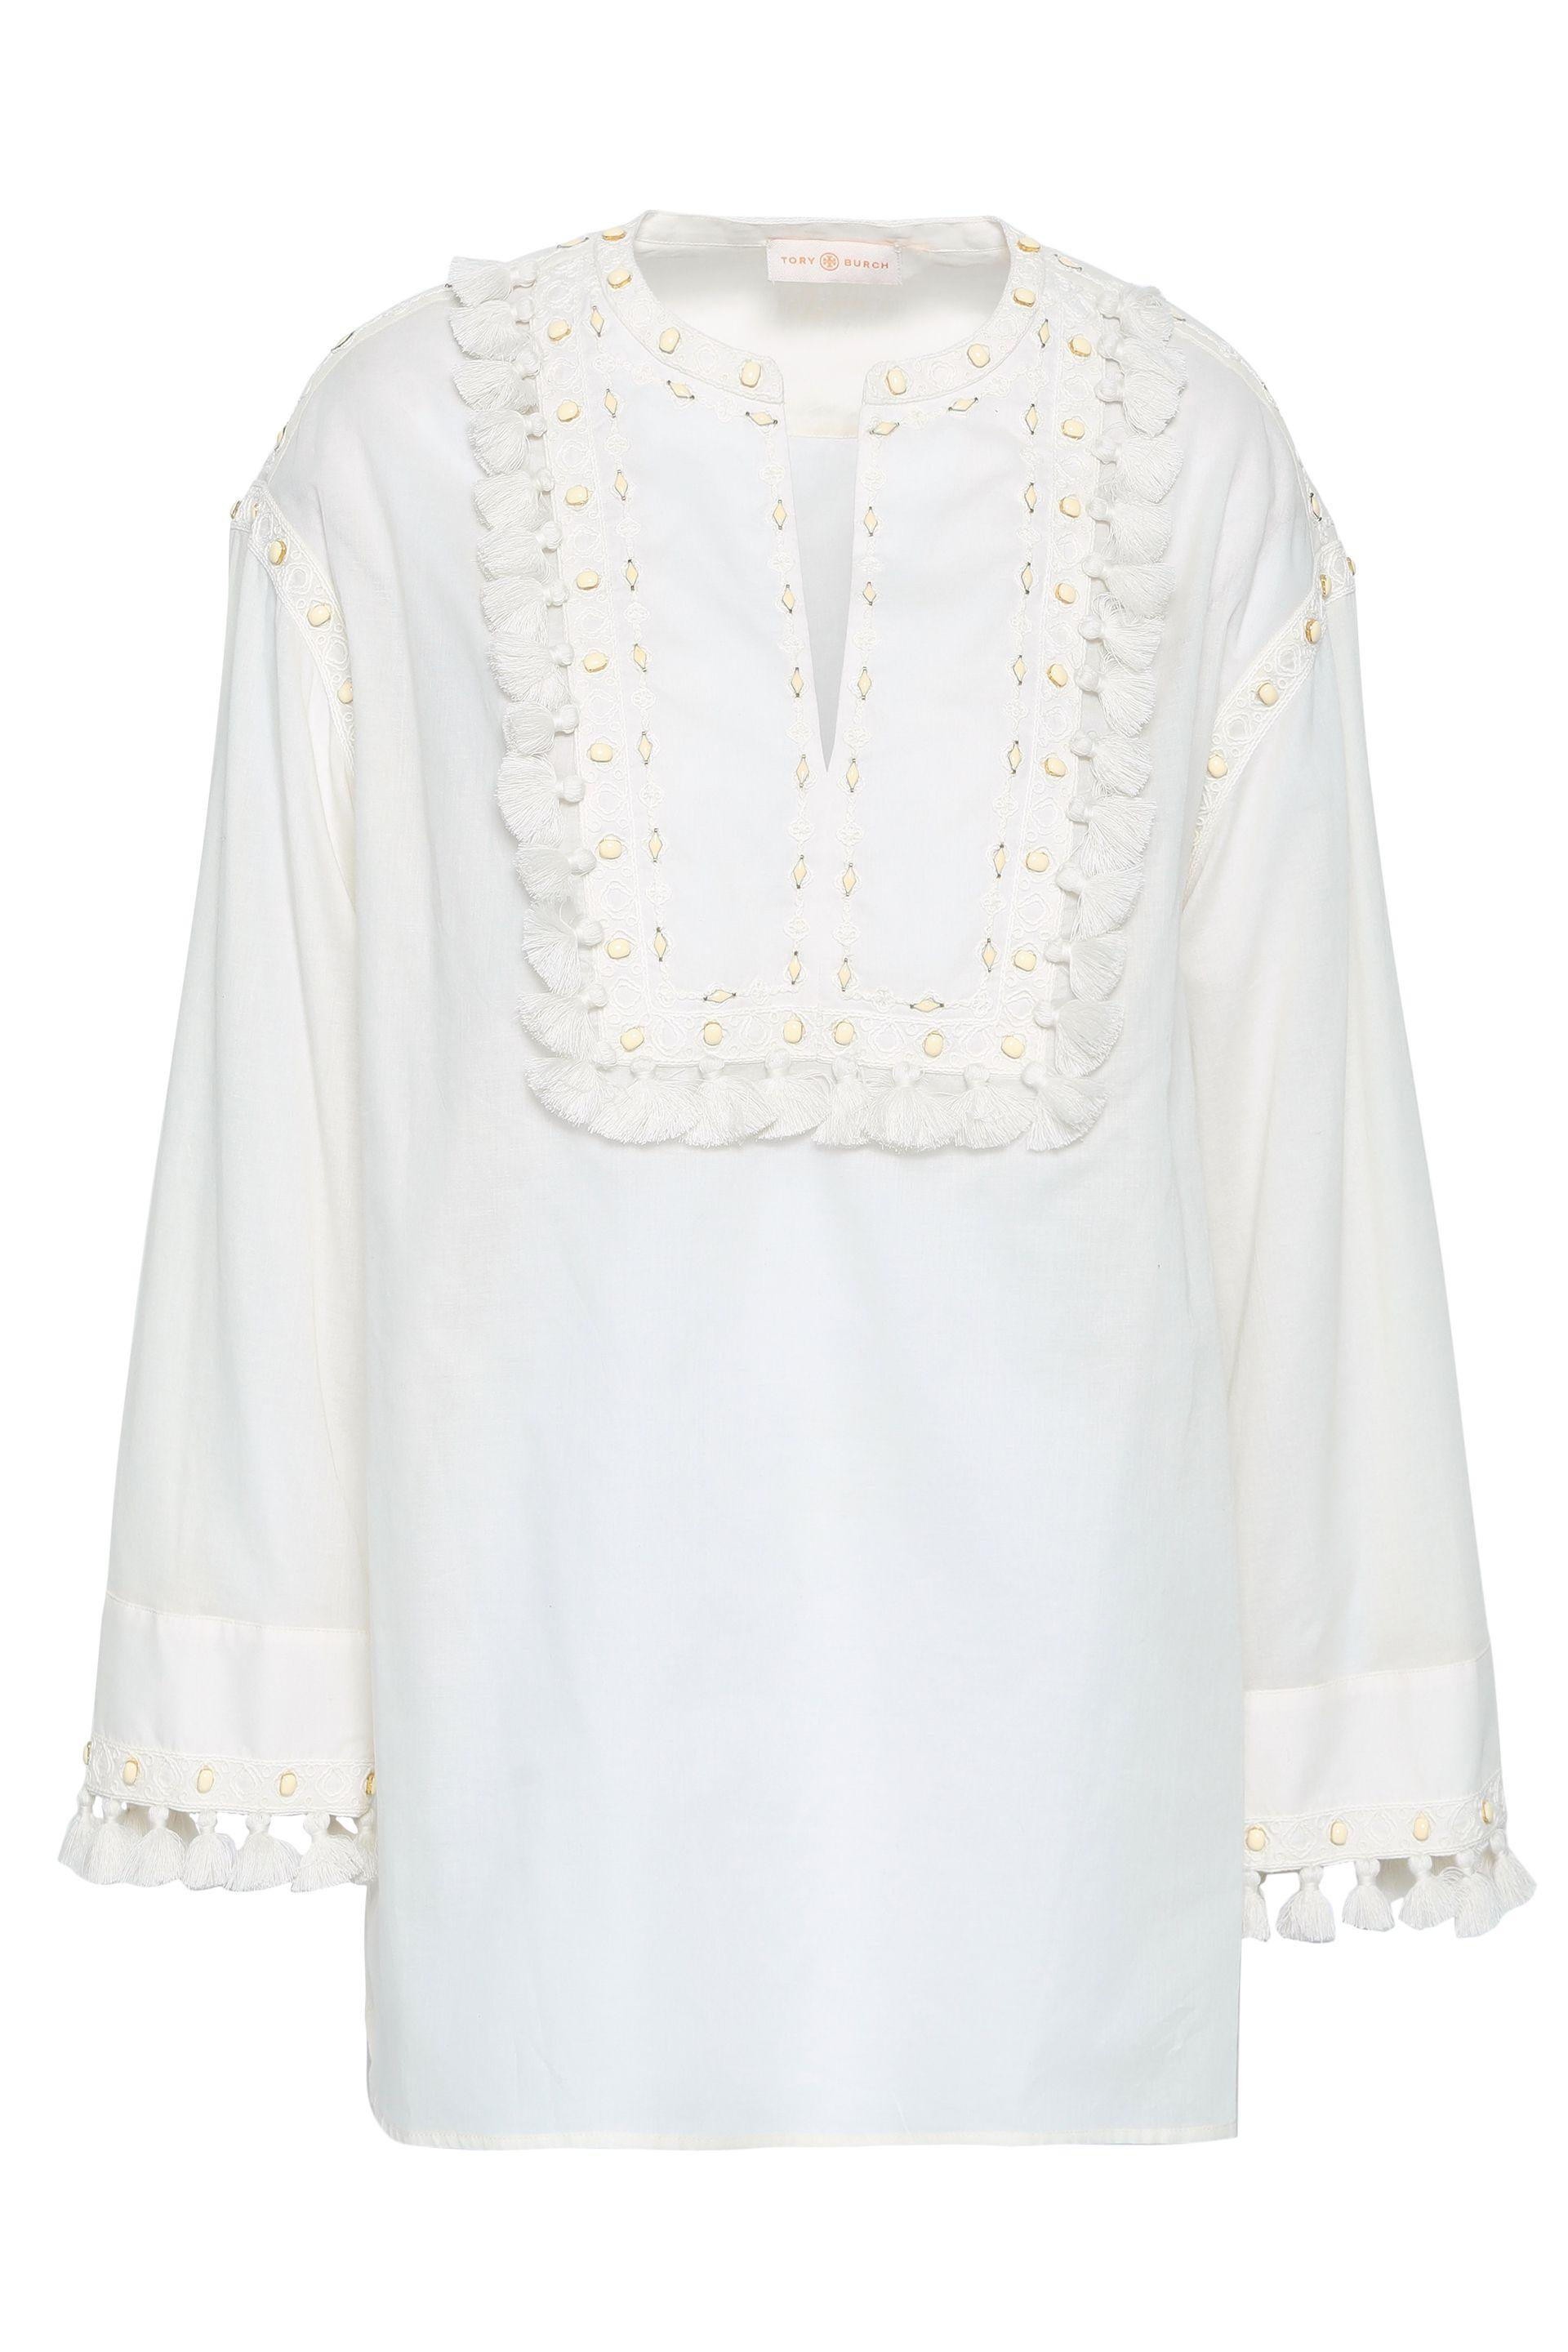 03e996c3010 Tory Burch Tasseled Embroidered Cotton-gauze Top in White - Lyst